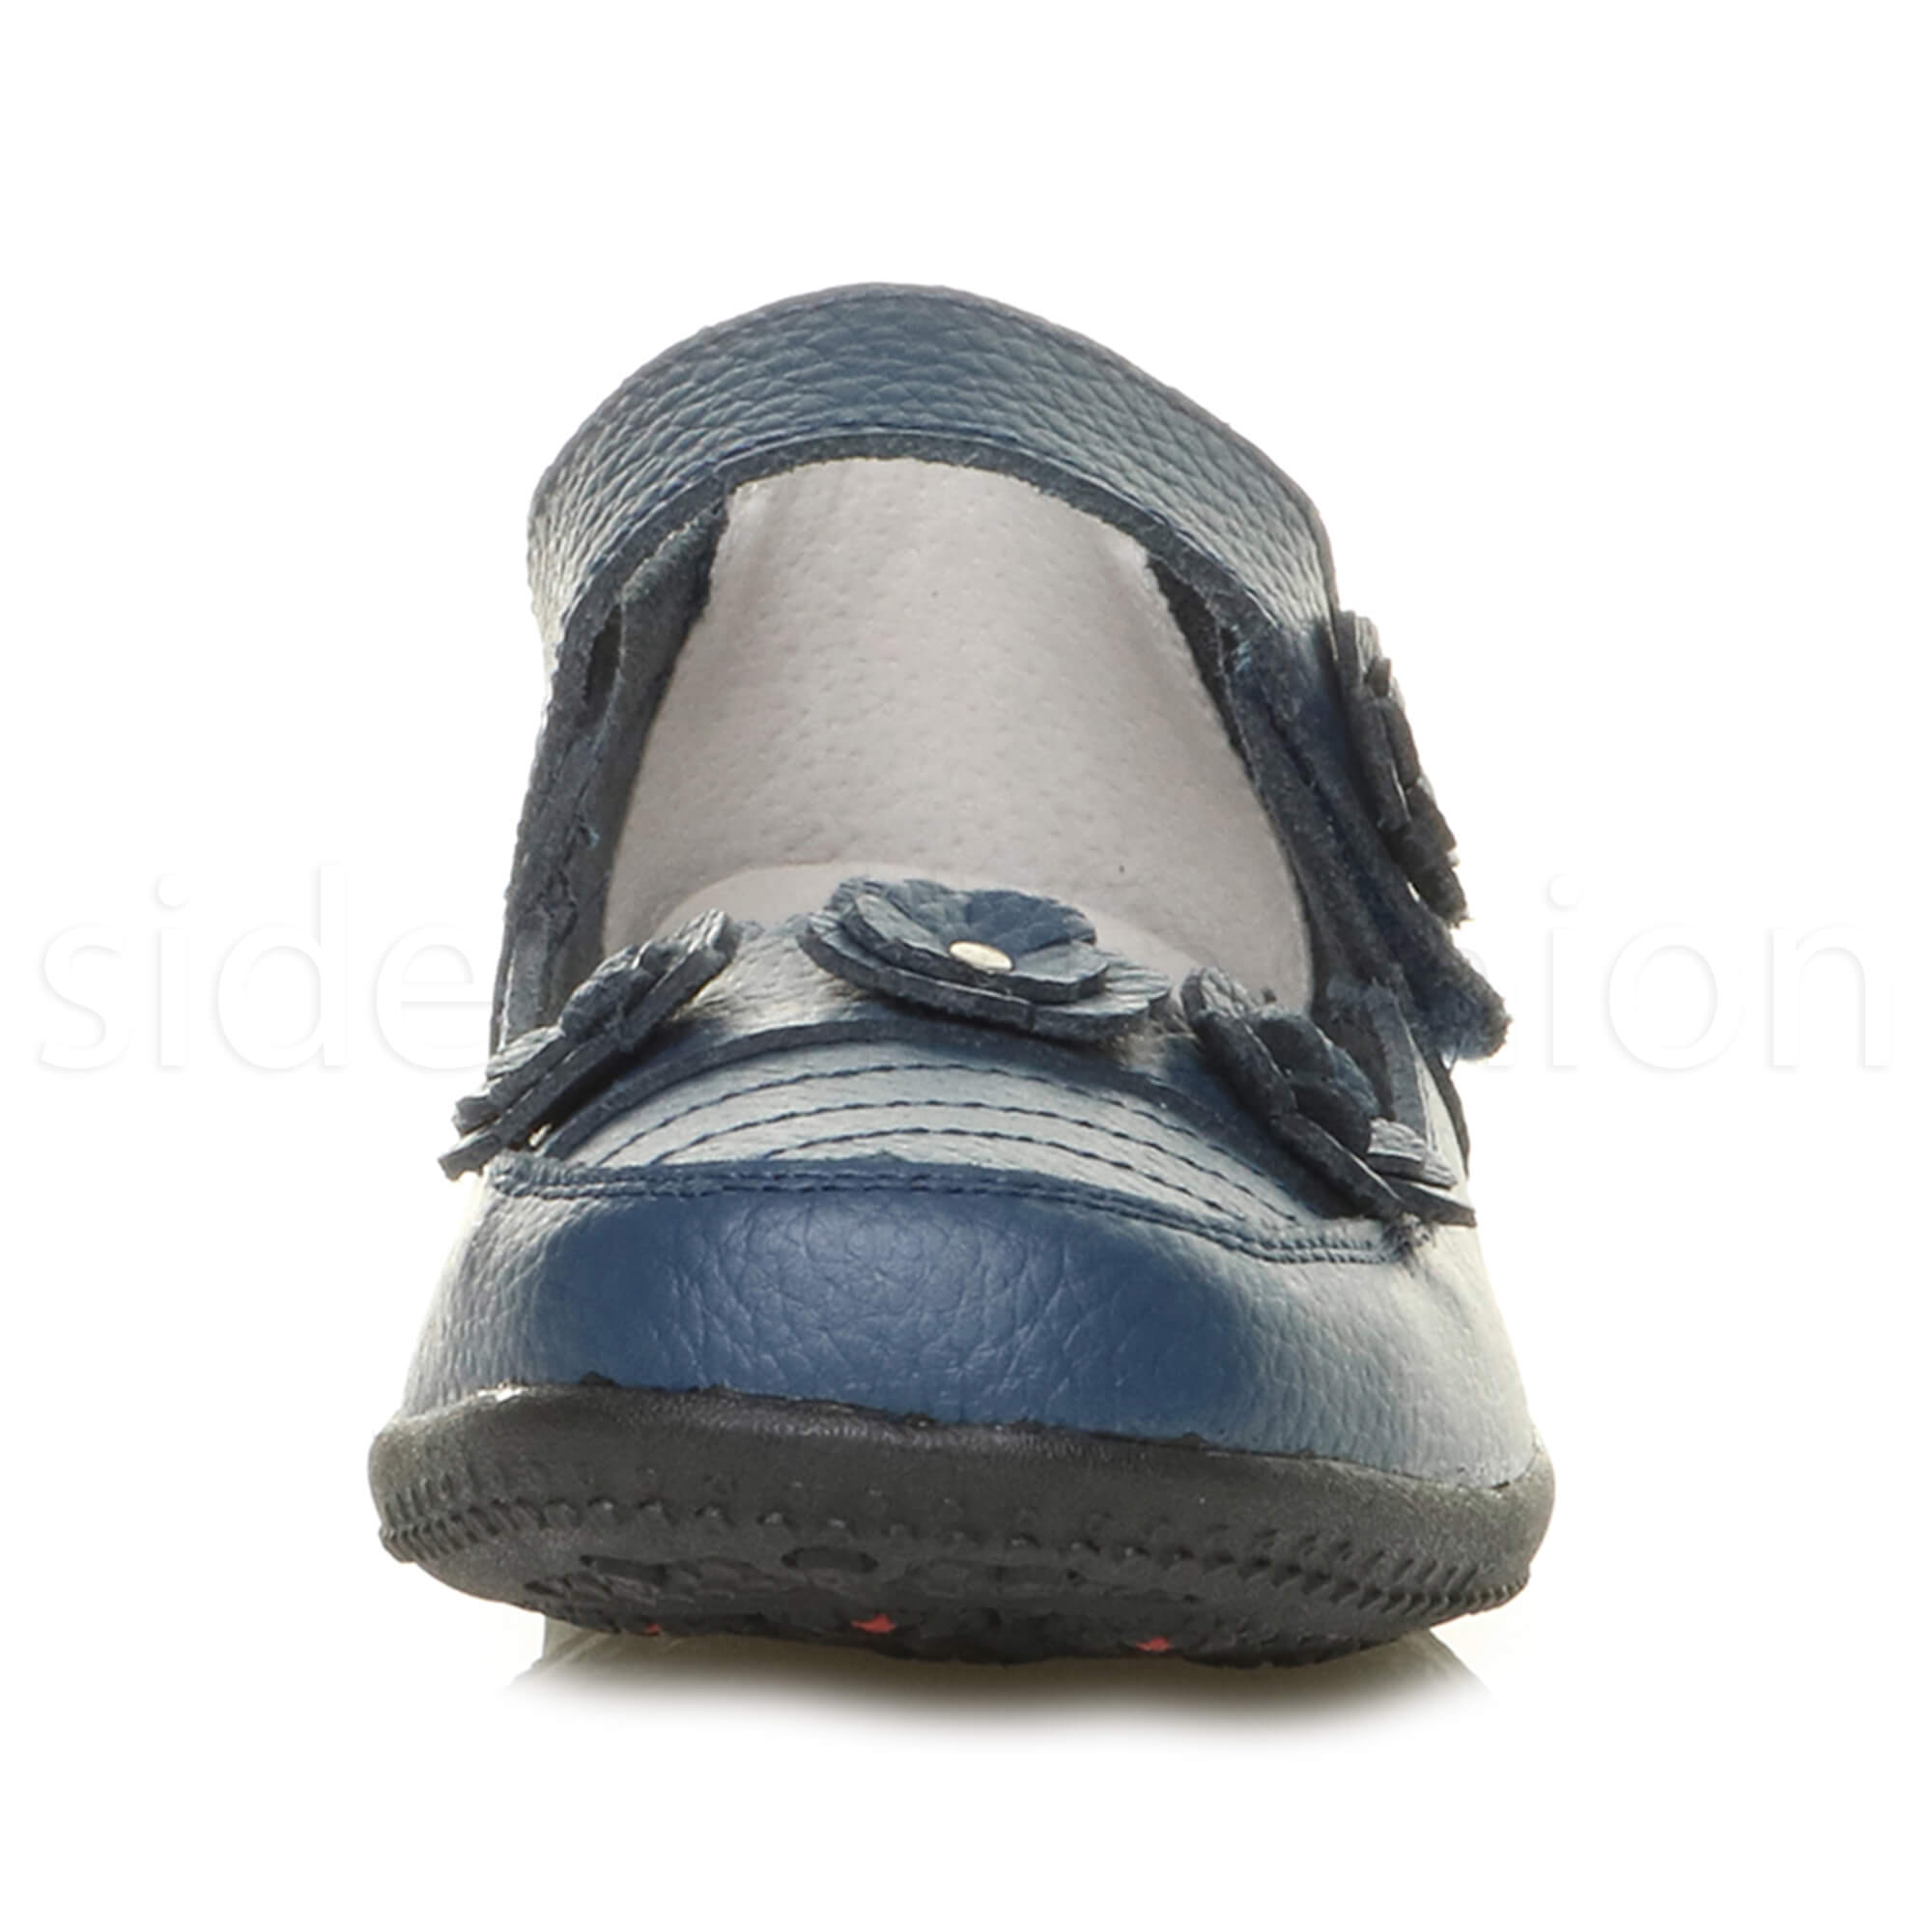 Womens-ladies-leather-comfort-walking-casual-sandals-mary-jane-strap-shoes-size thumbnail 36